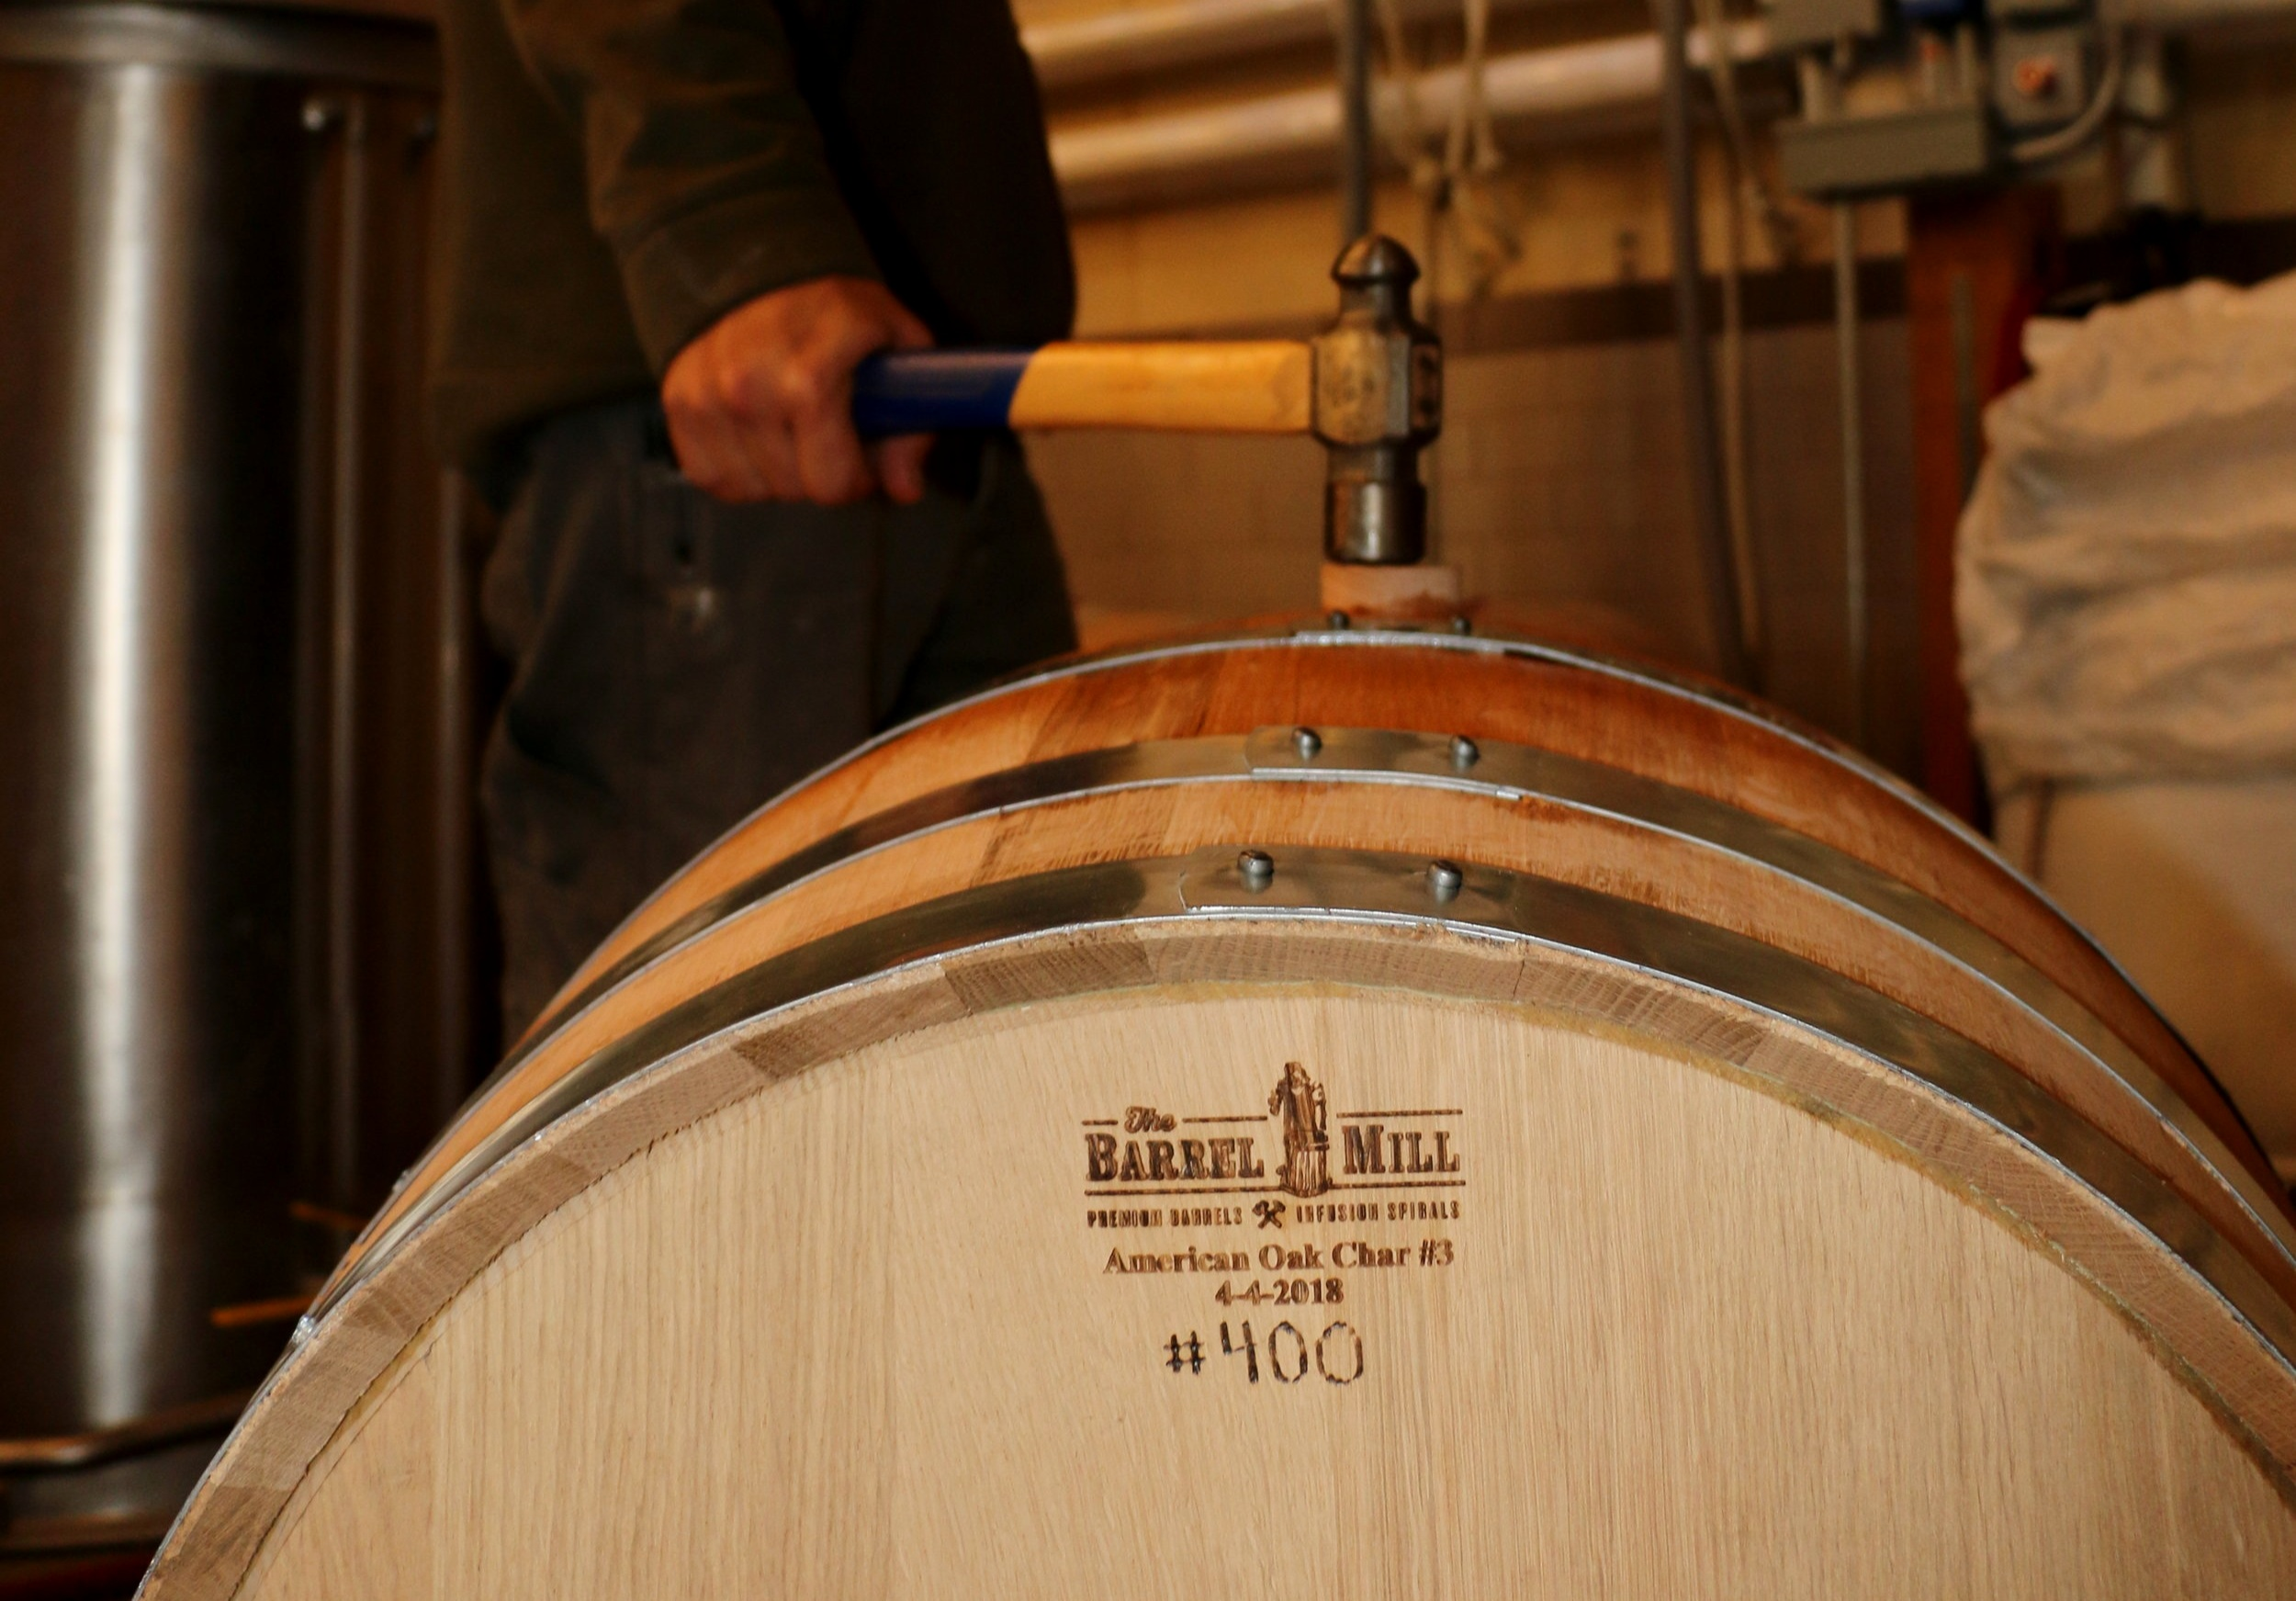 Saint Lawrence Spirits 400th Barrel being closed for the next two years.